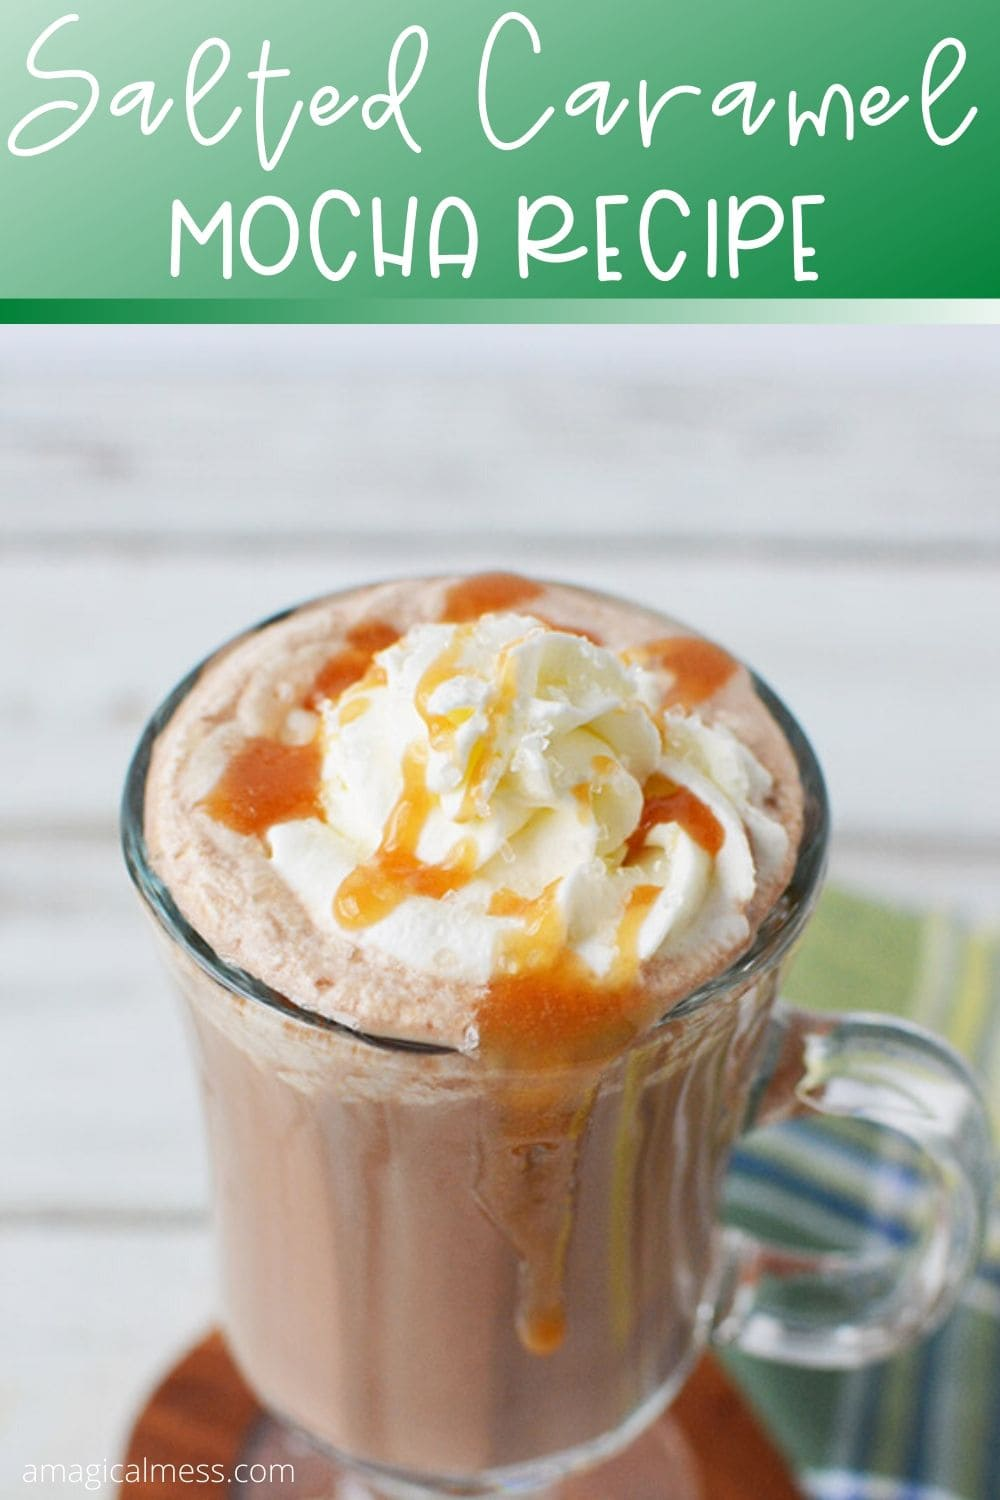 Coffee drink topped with whipped cream and caramel